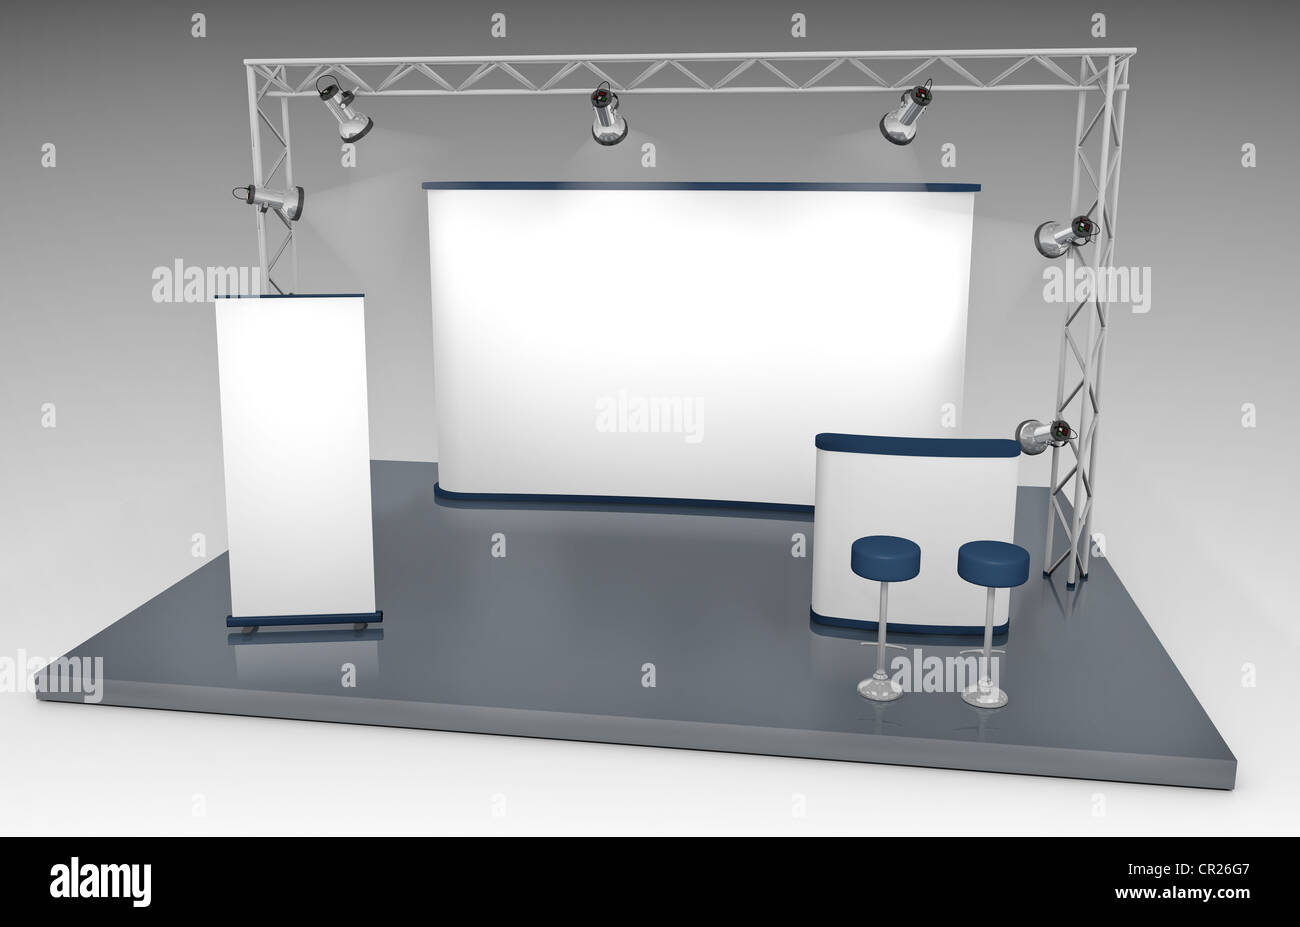 Exhibition Stand With Screen : Lcd exhibition display stand with graphic panel